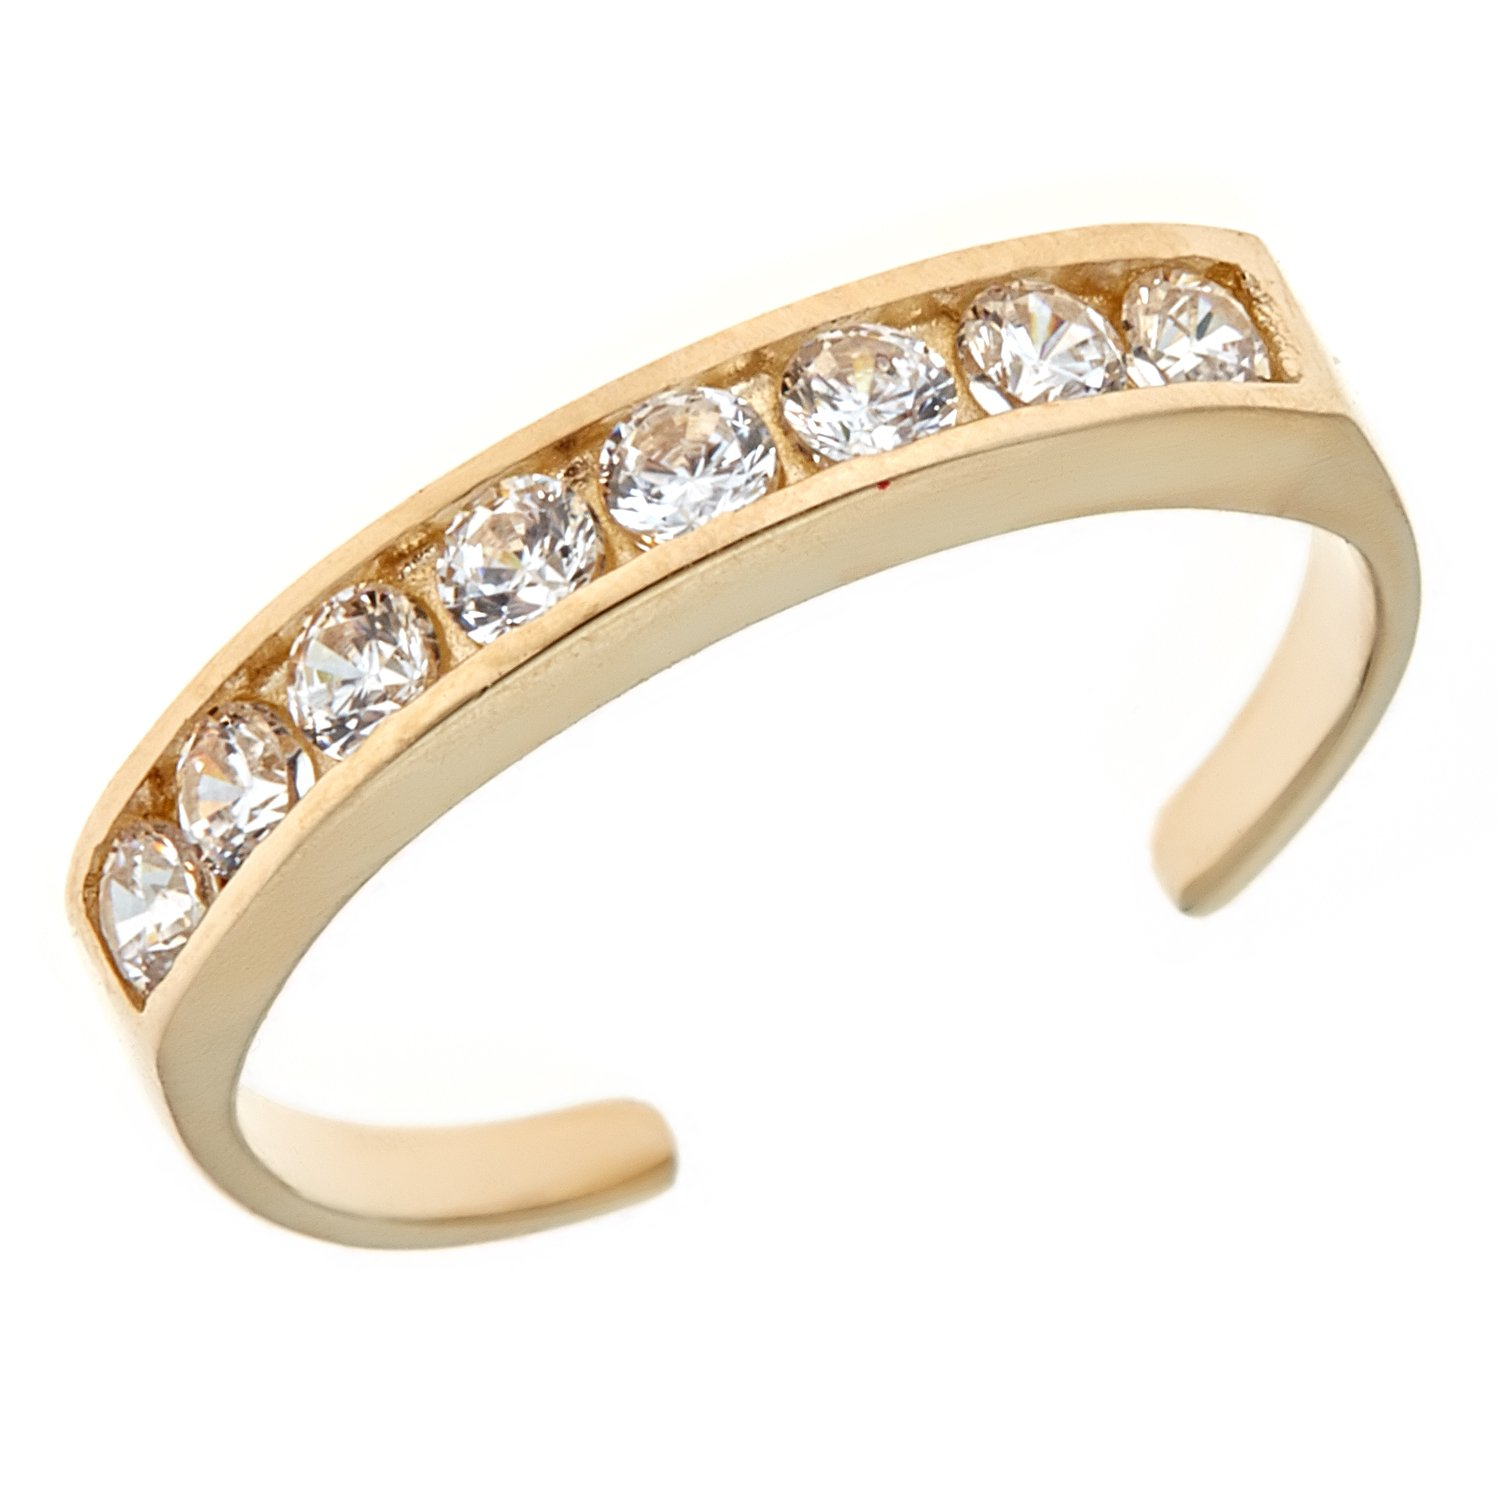 10k Solid Gold Eternity Band Cubic Zirconia Toe Ring Channel Set Adjustable Body Jewelry